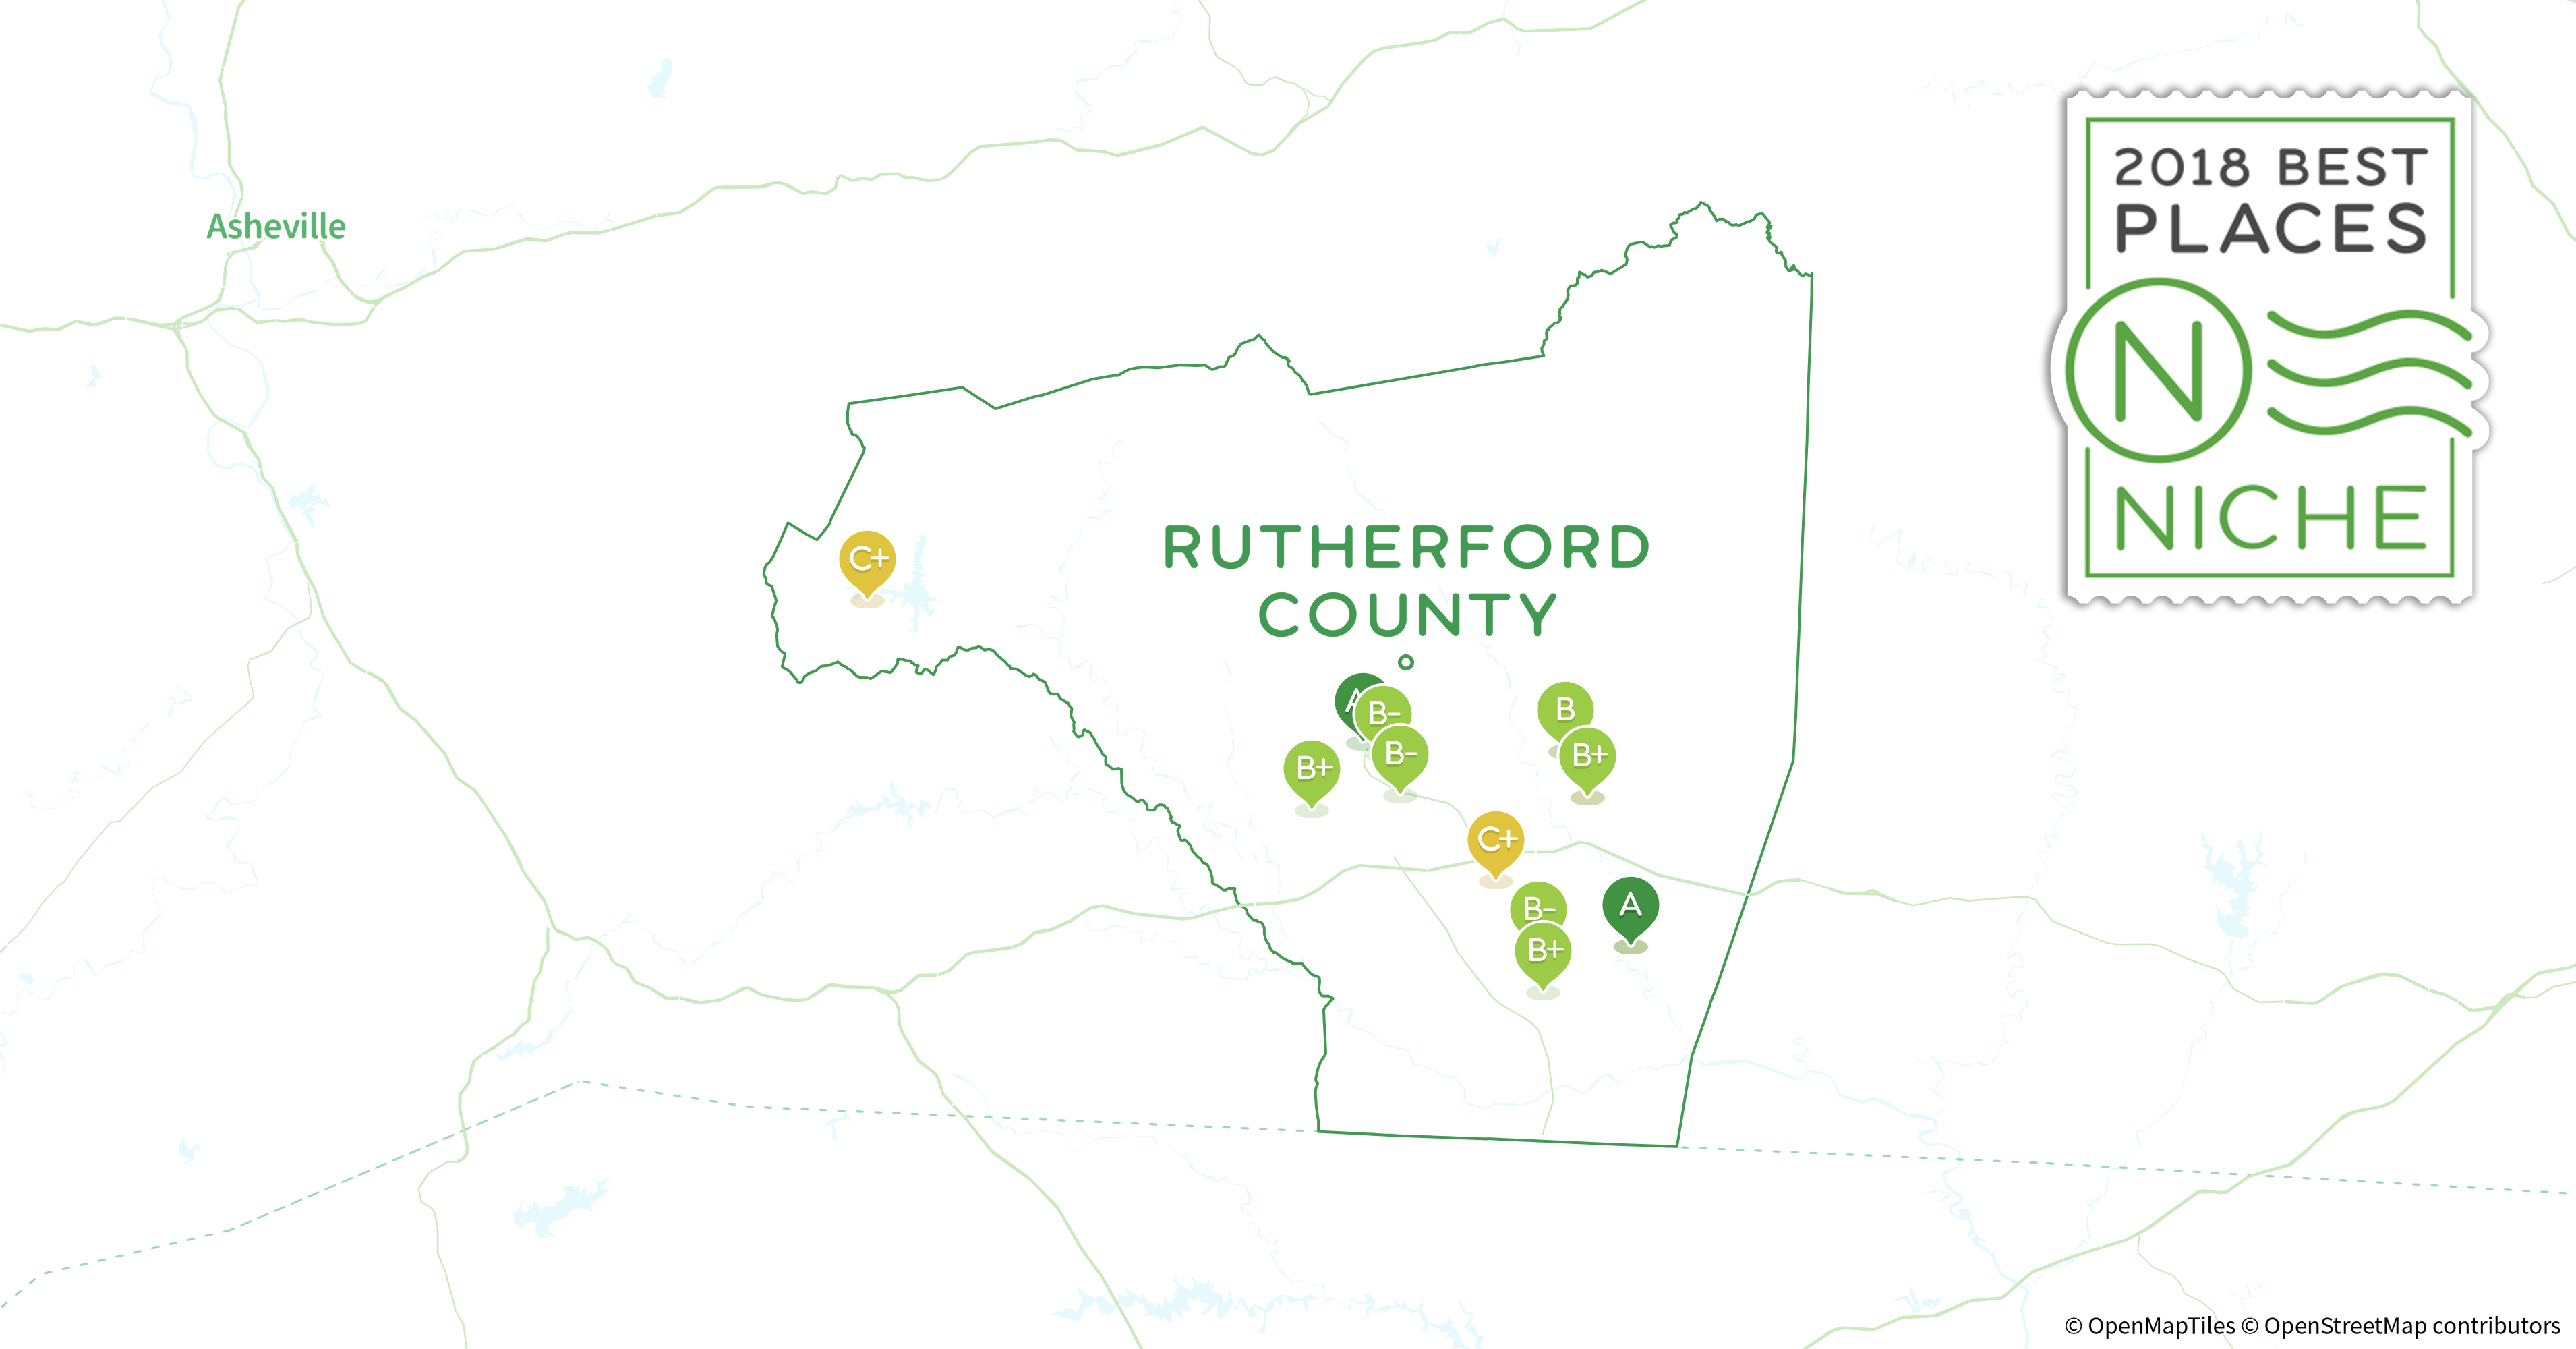 2018 Best Places To Retire In Rutherford County Nc Niche